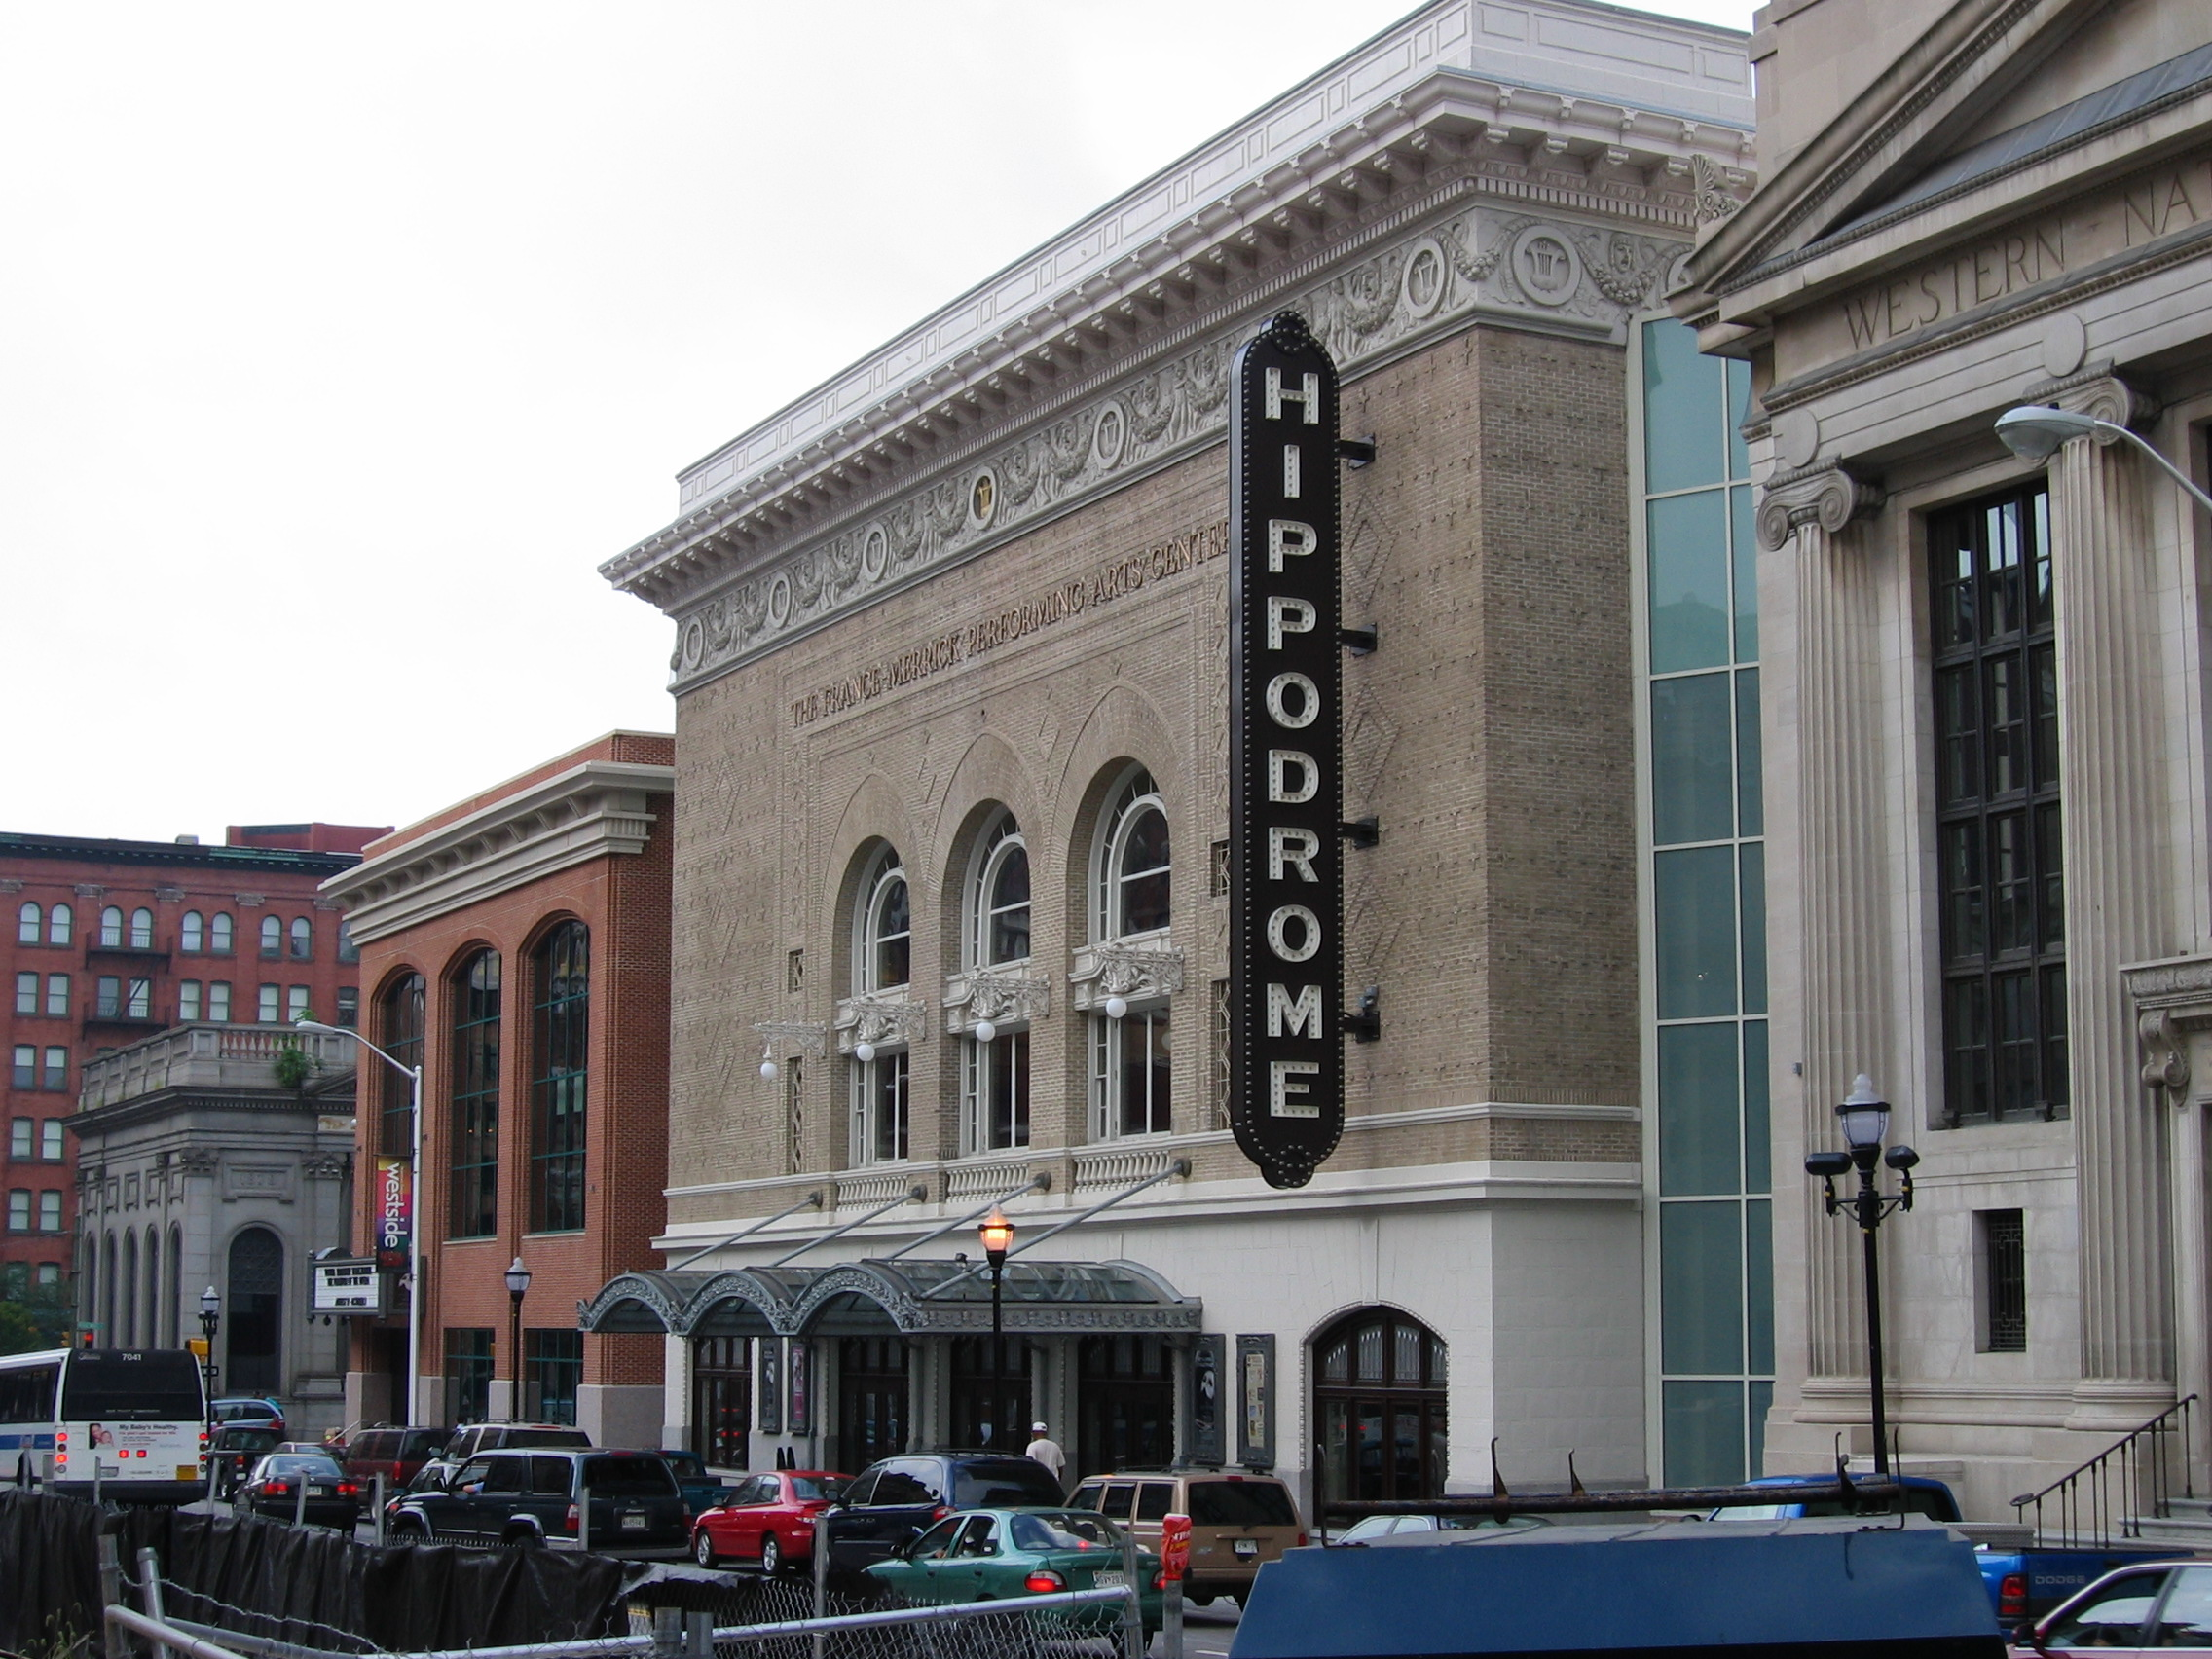 Engineers Guide to Baltimore: Hippodrome Theater